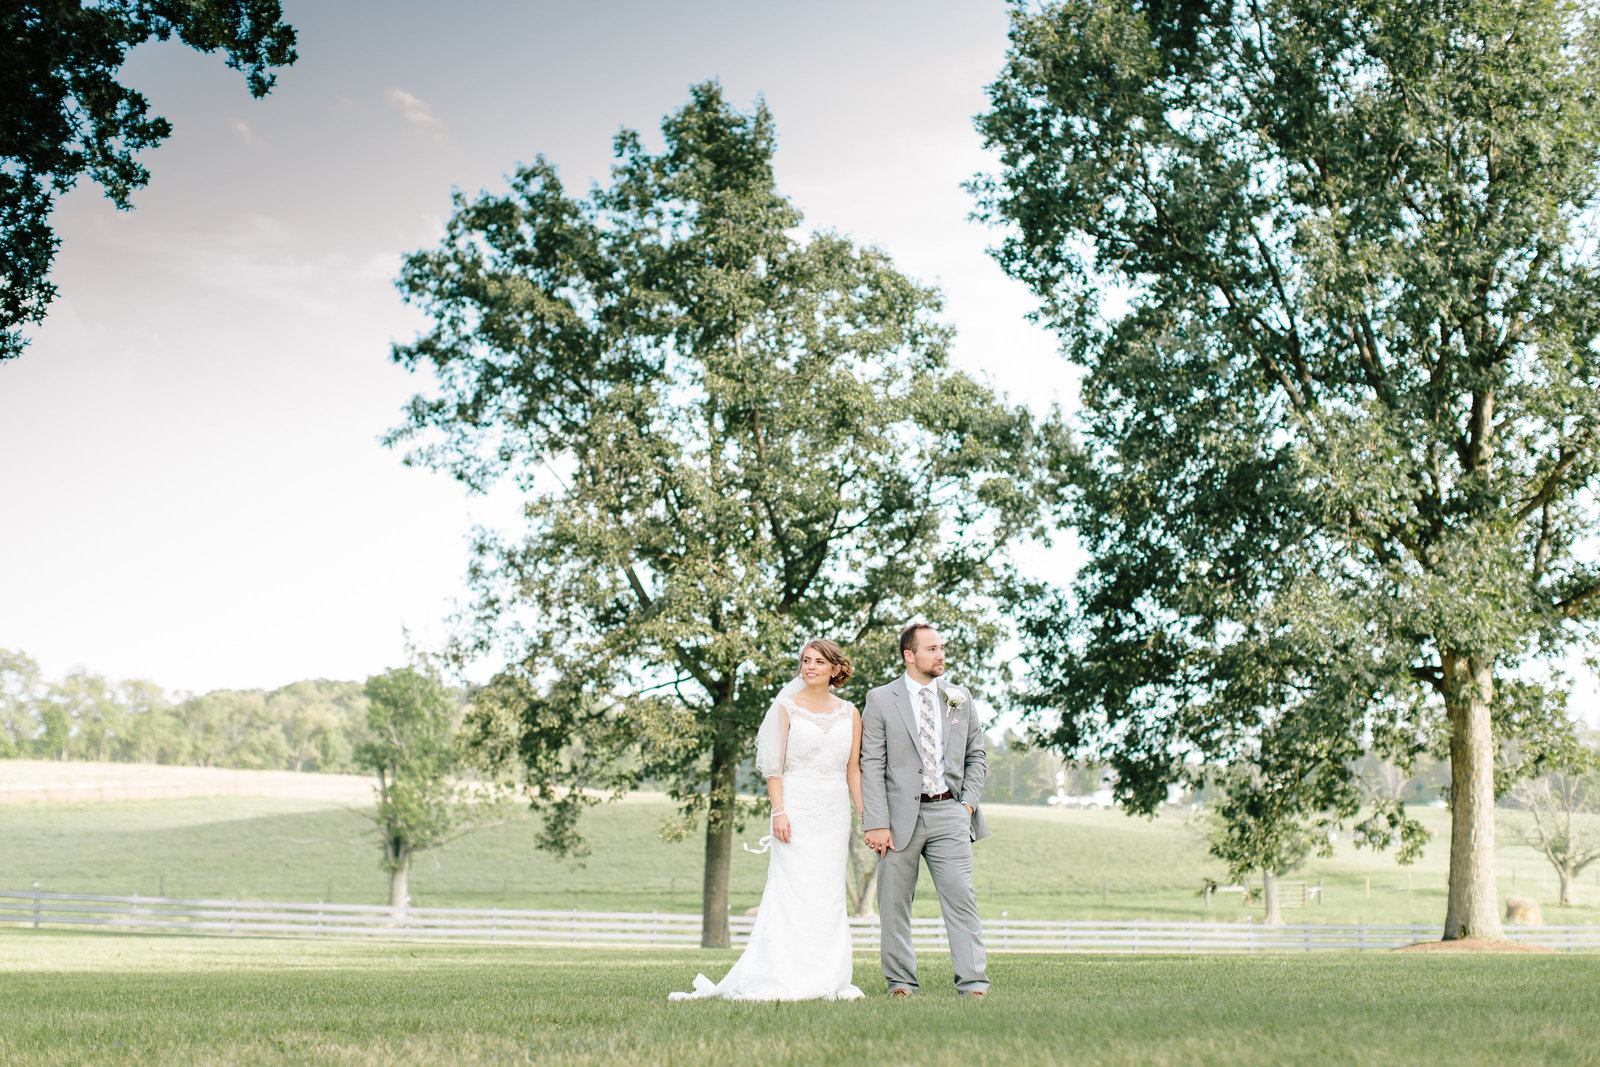 Lousville Ohio wedding at Brookside farm by Austin and Rachel Photography